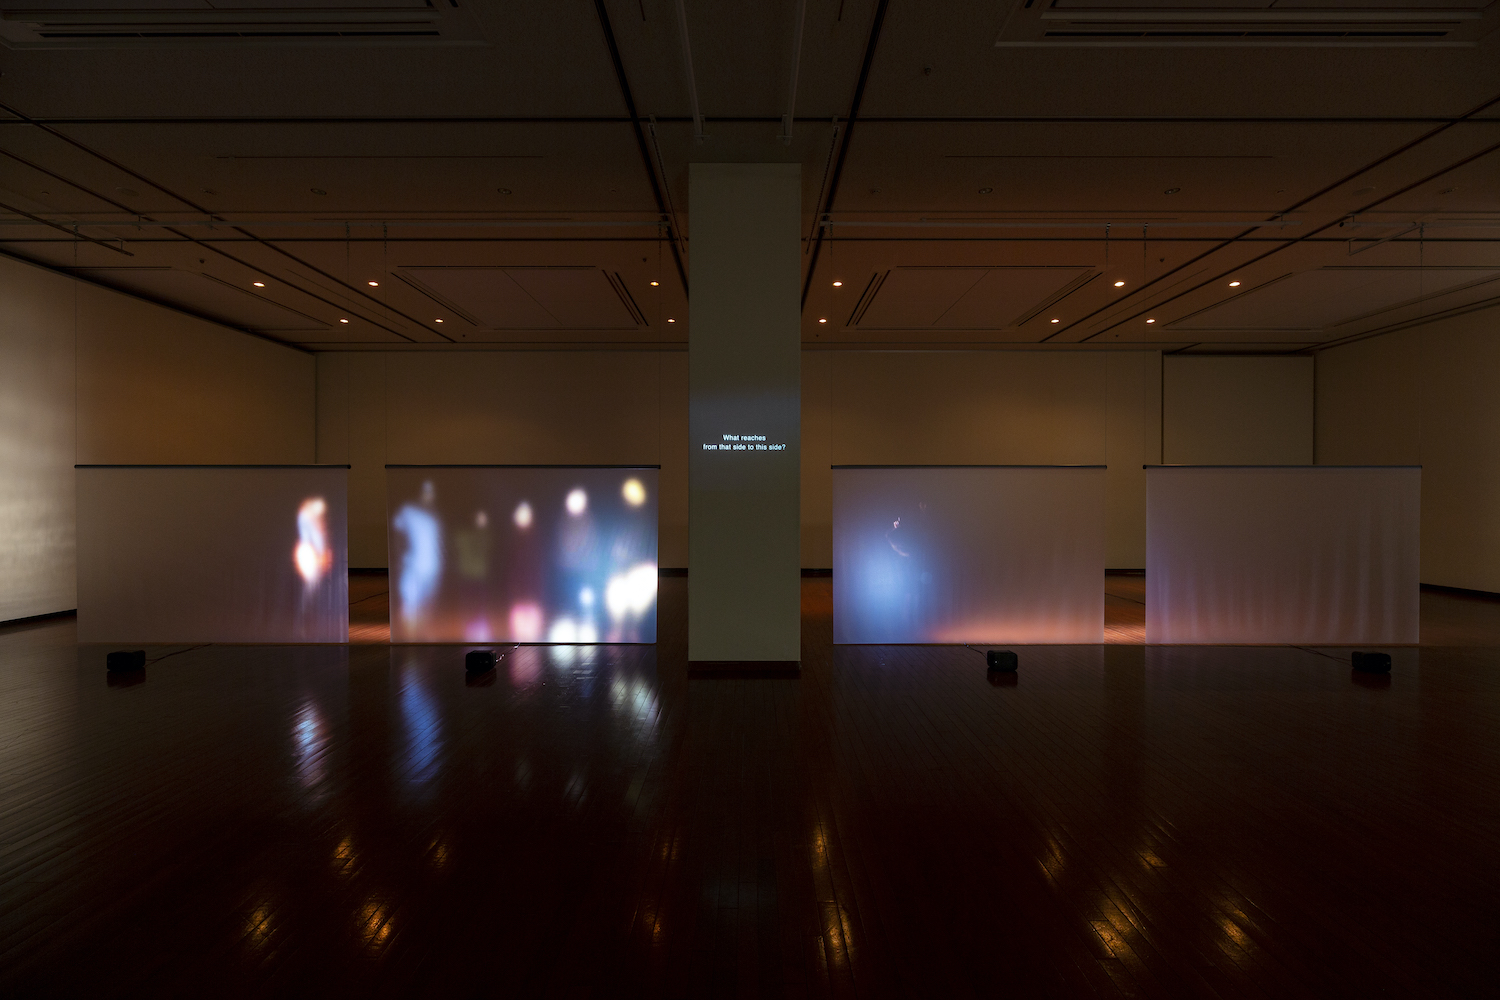 chelfitsch's Eizo-Theater The Landscape, the World, and Accidents:  Everything That Happens Outside of This Room image 2